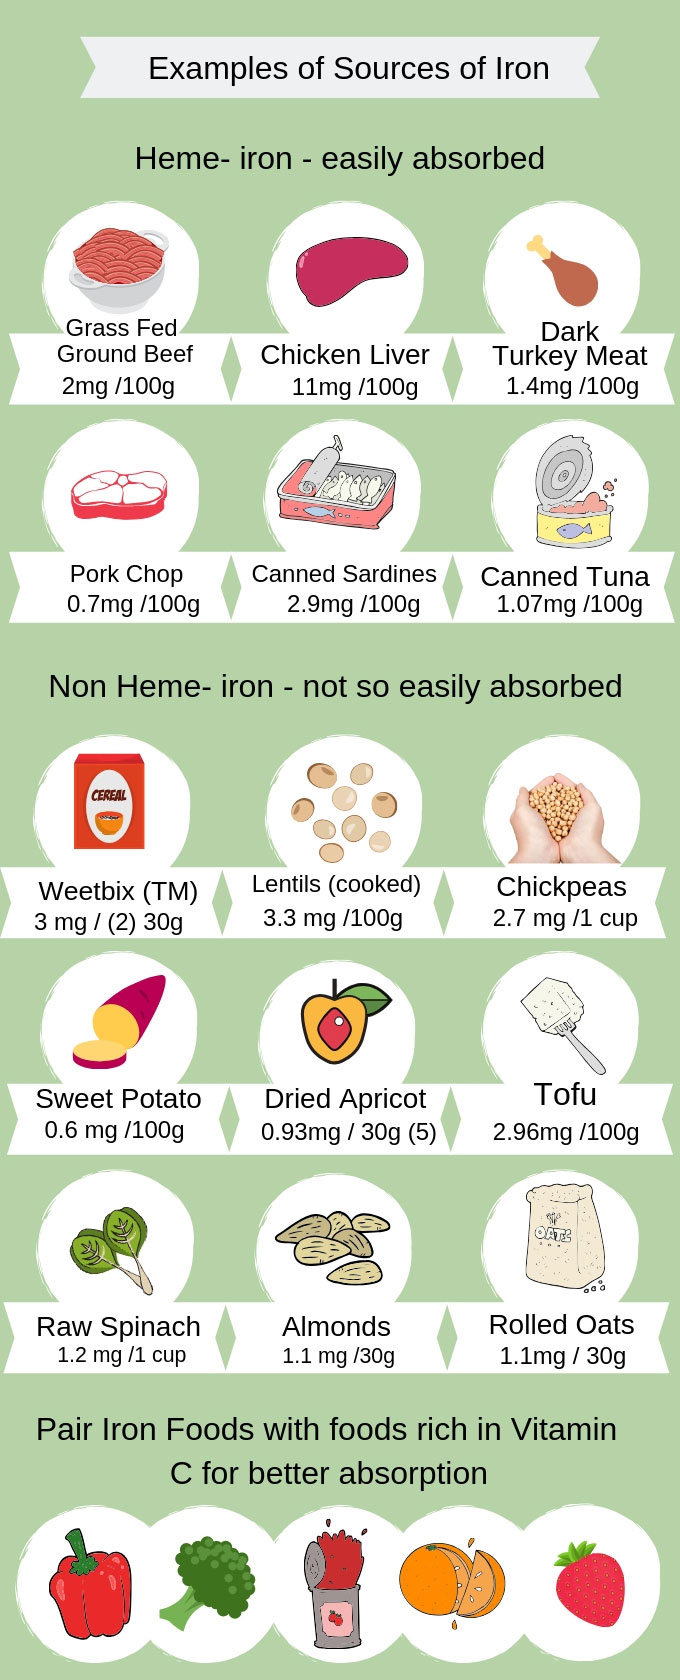 Examples of Dietary Iron Sources with Iron Content Detailed (mg)